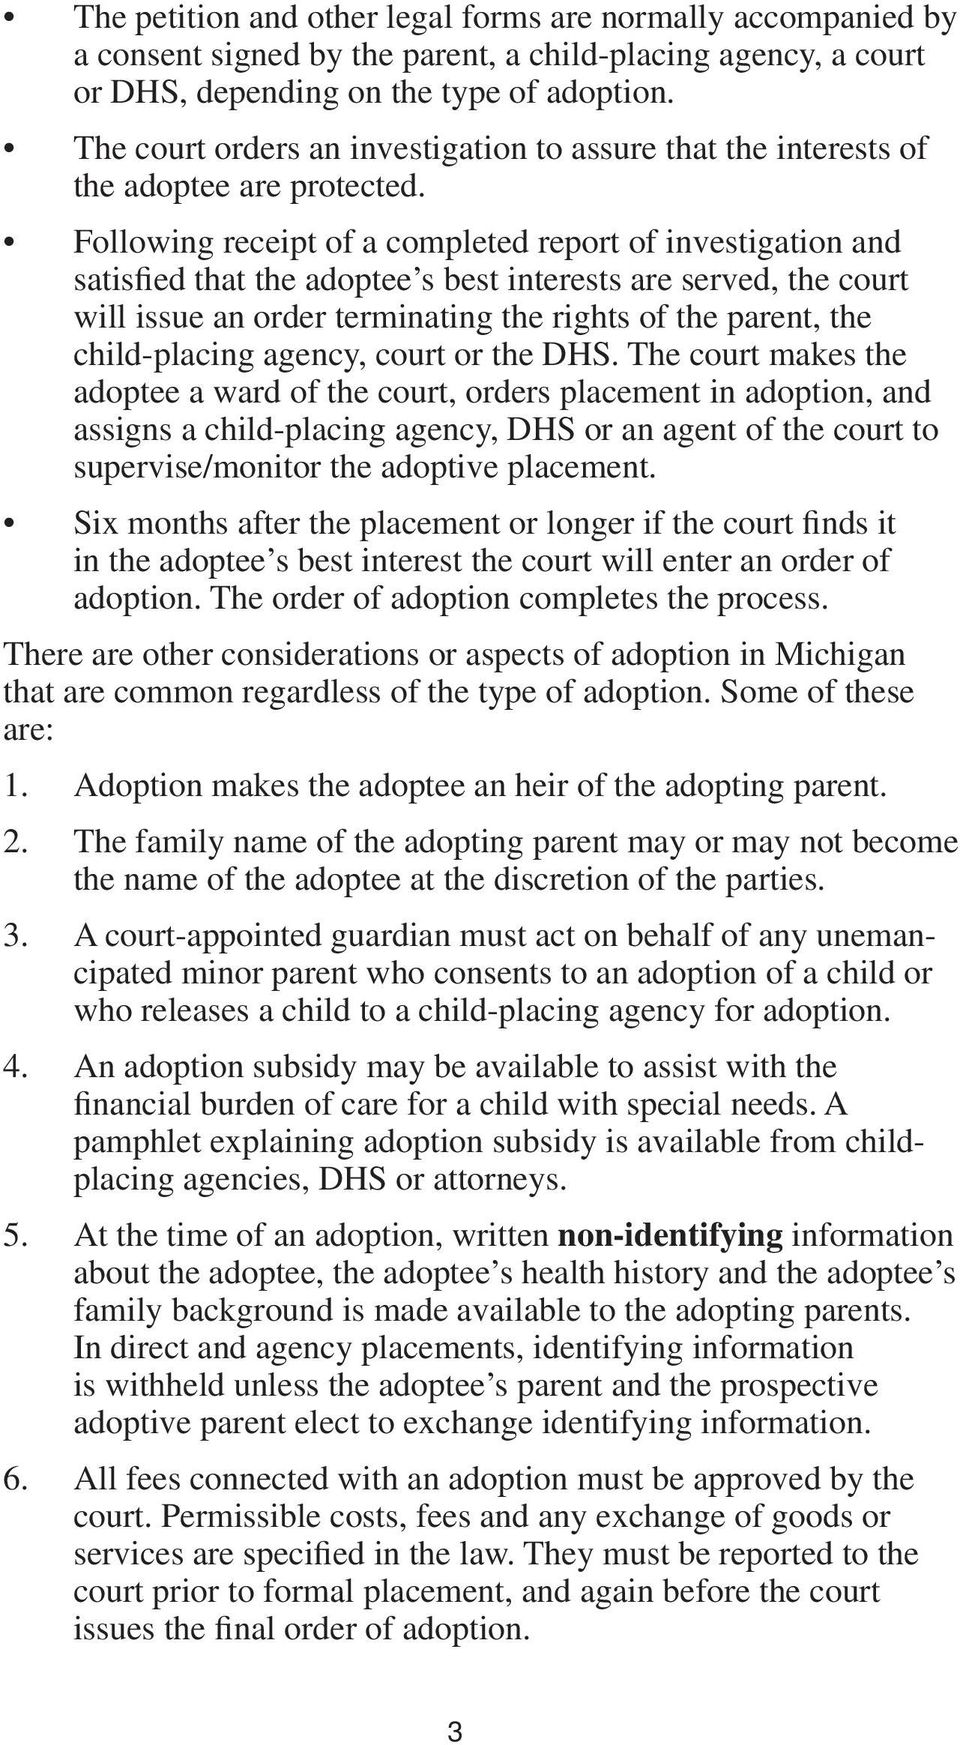 Following receipt of a completed report of investigation and satisfied that the adoptee s best interests are served, the court will issue an order terminating the rights of the parent, the